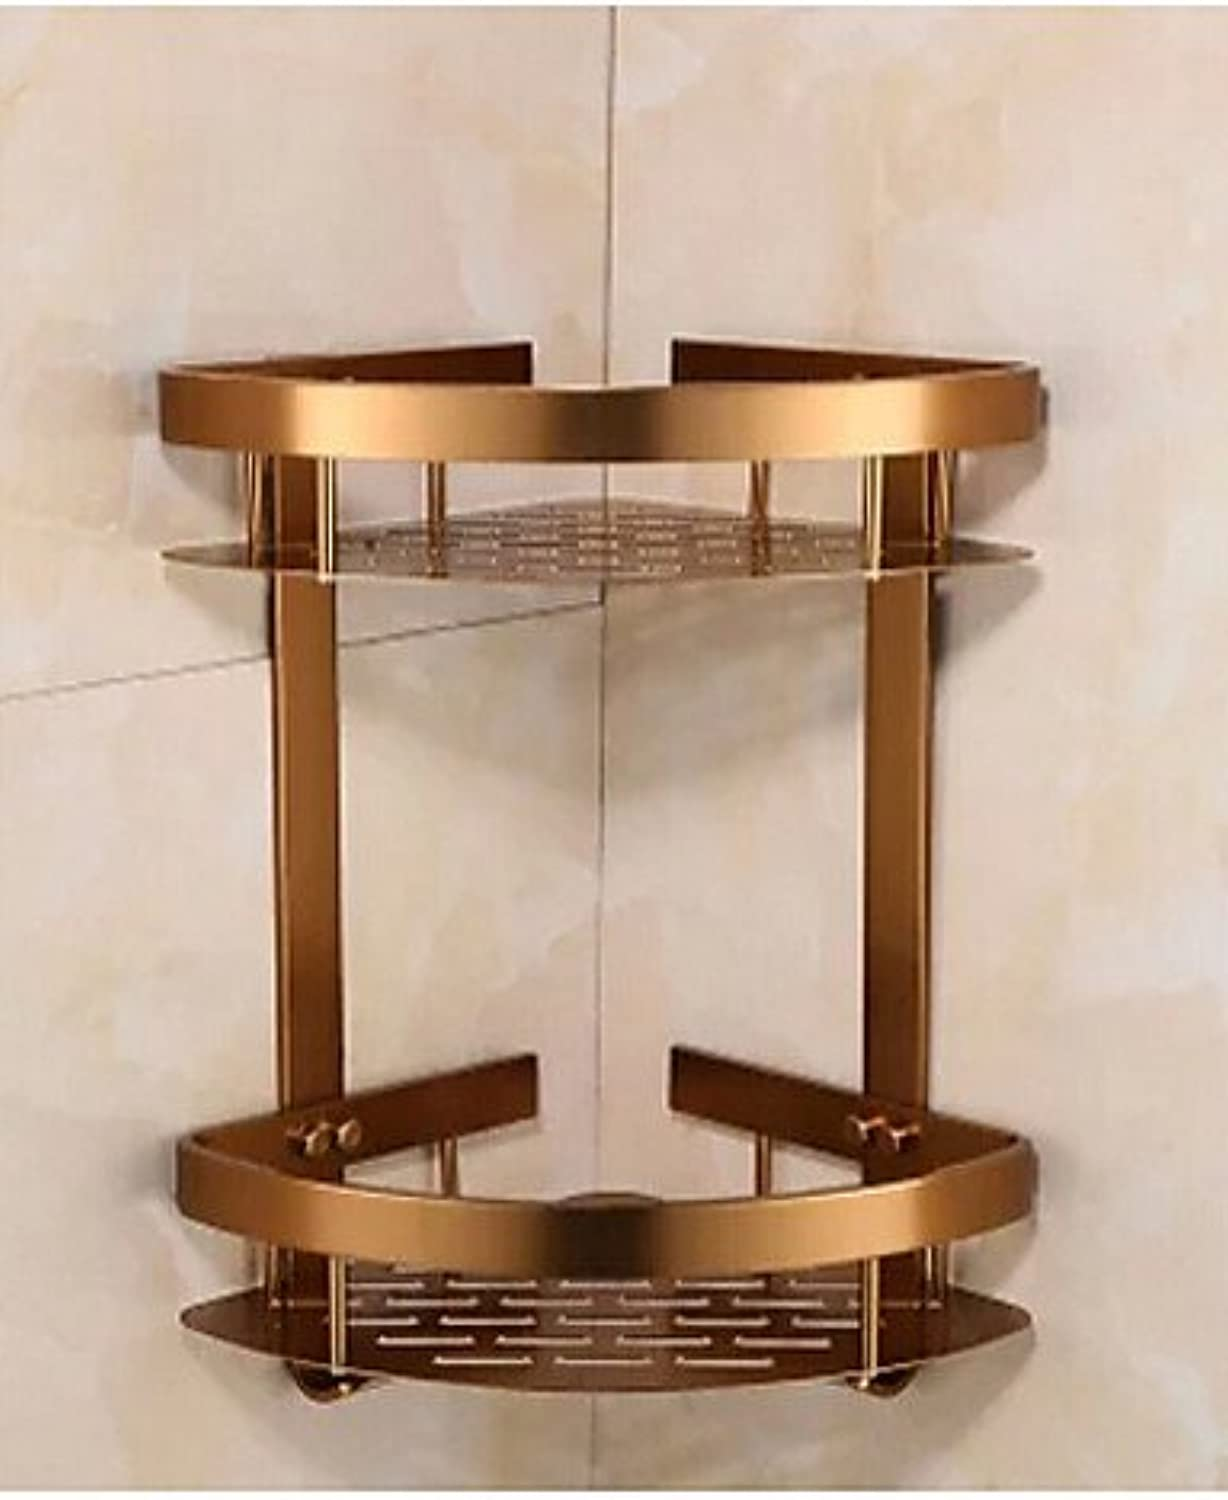 WYMBS Antique Solid Aluminum Bathroom Shelf , Neoclassical Antique Bronze Wall Mounted